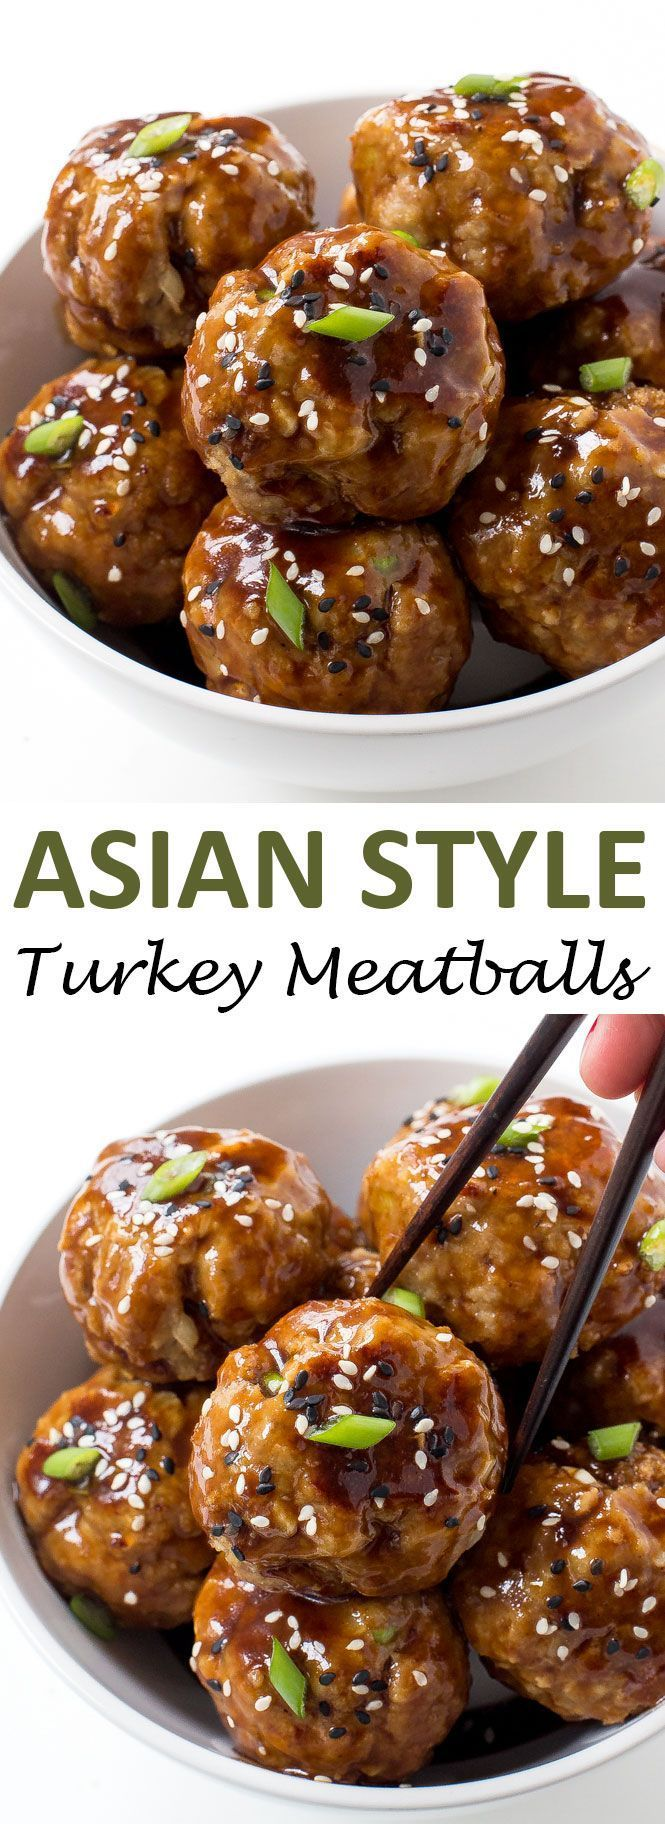 30 MINUTE ASIAN TURKEY MEATBALLS. BAKED AND TOSSED IN AN ASIAN INSPIRED SAUCE…